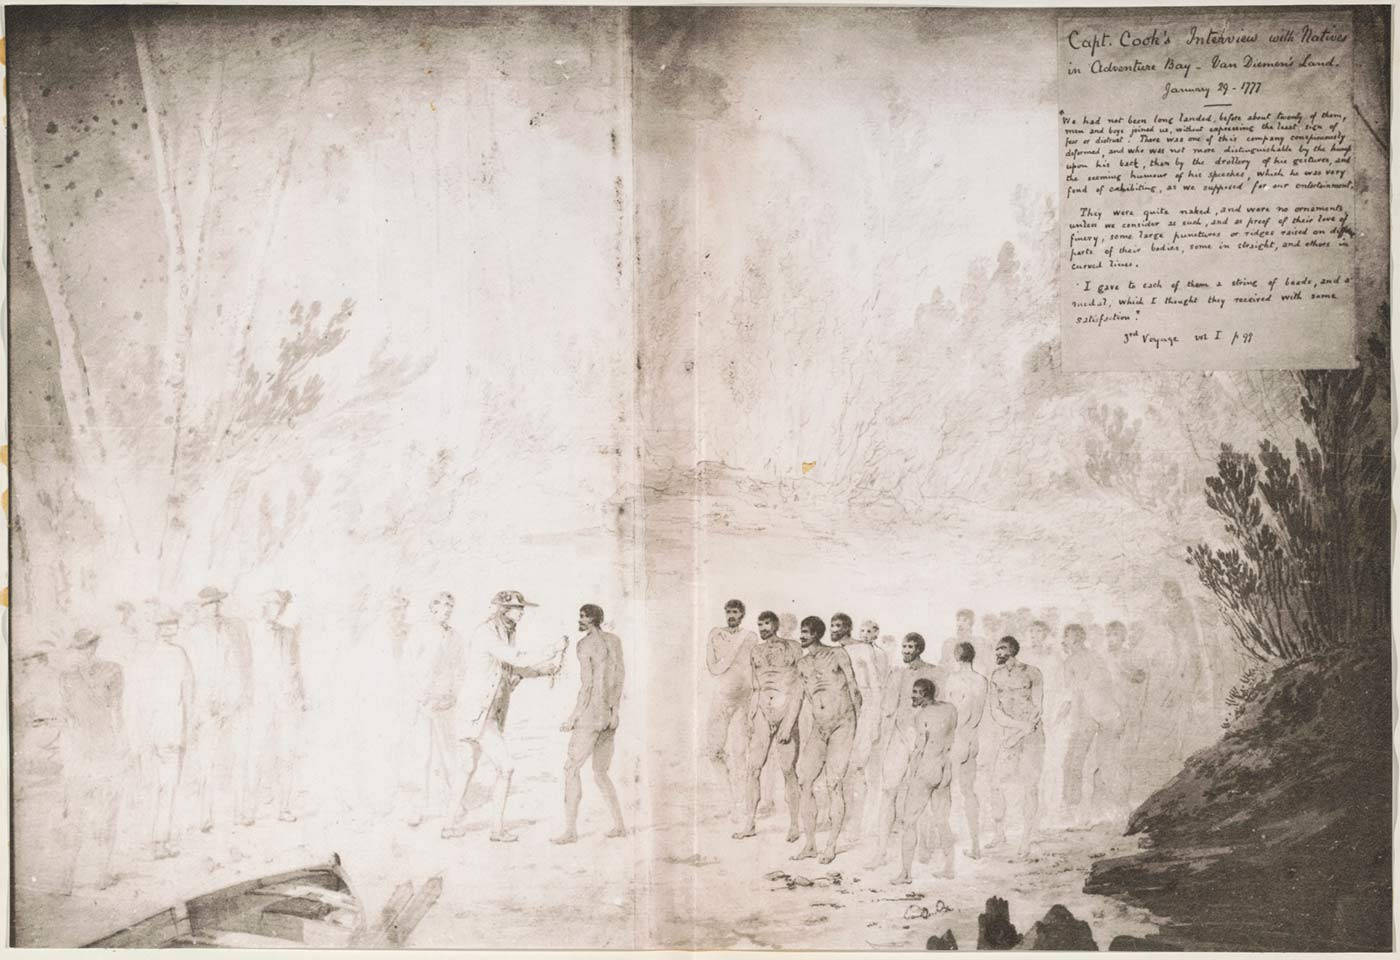 Open book presenting a black and white illustration across both pages. The illustration presents a scene where two groups of men of different ethnicities meet. In the centre the more prominent figure of one group presents an unidentified object to the prominent figure of the other group. In the top right corner on the right page there is a title that reads: 'Capt. Cook's Interview with Natives in Adventure Bay - Van Diemen's Land . January 29 1777'. Underneath are several paragraphs of handwritten text. - click to view larger image